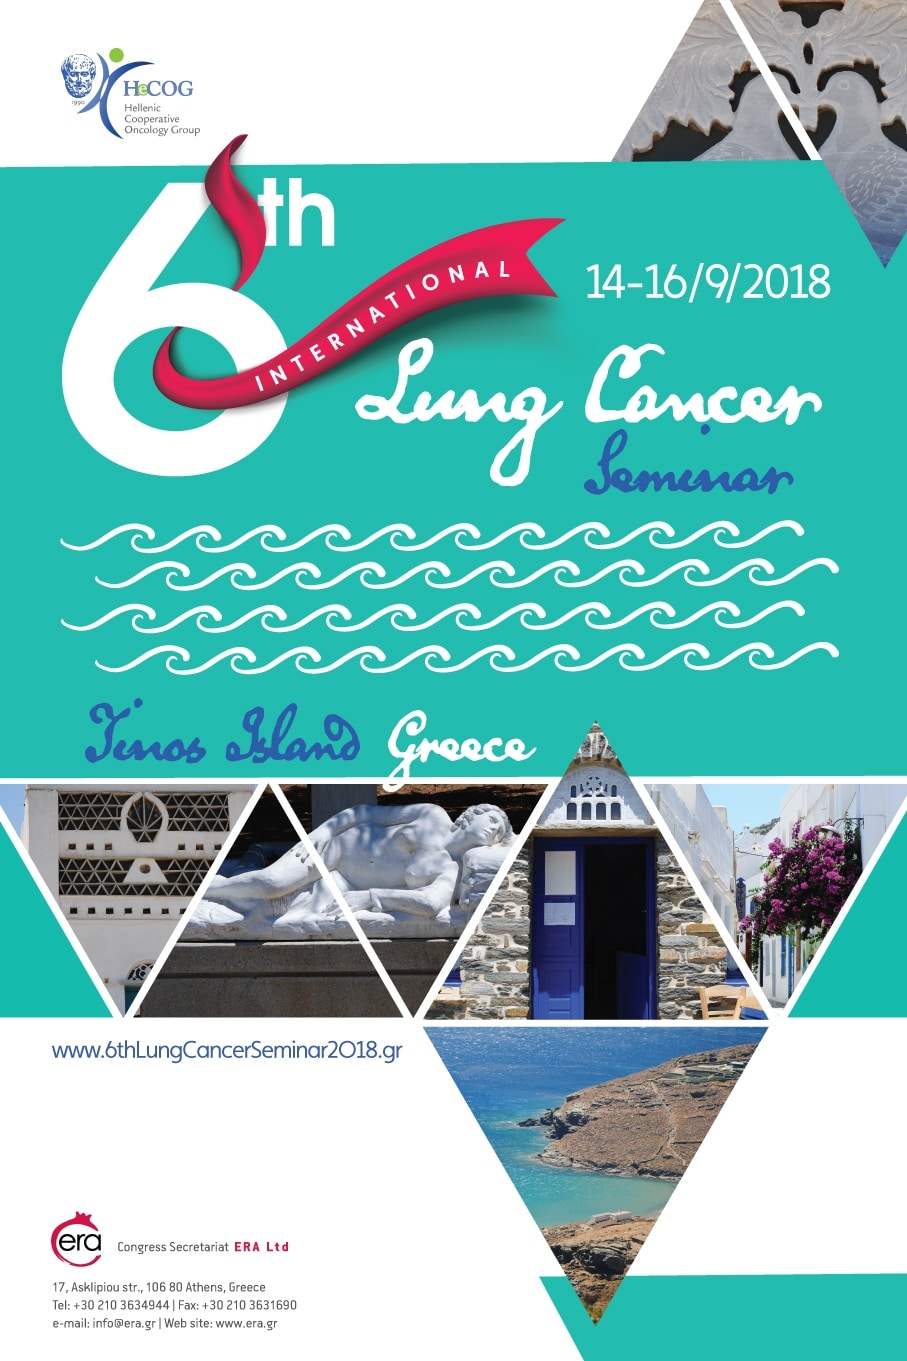 6th International Lung Cancer Seminar